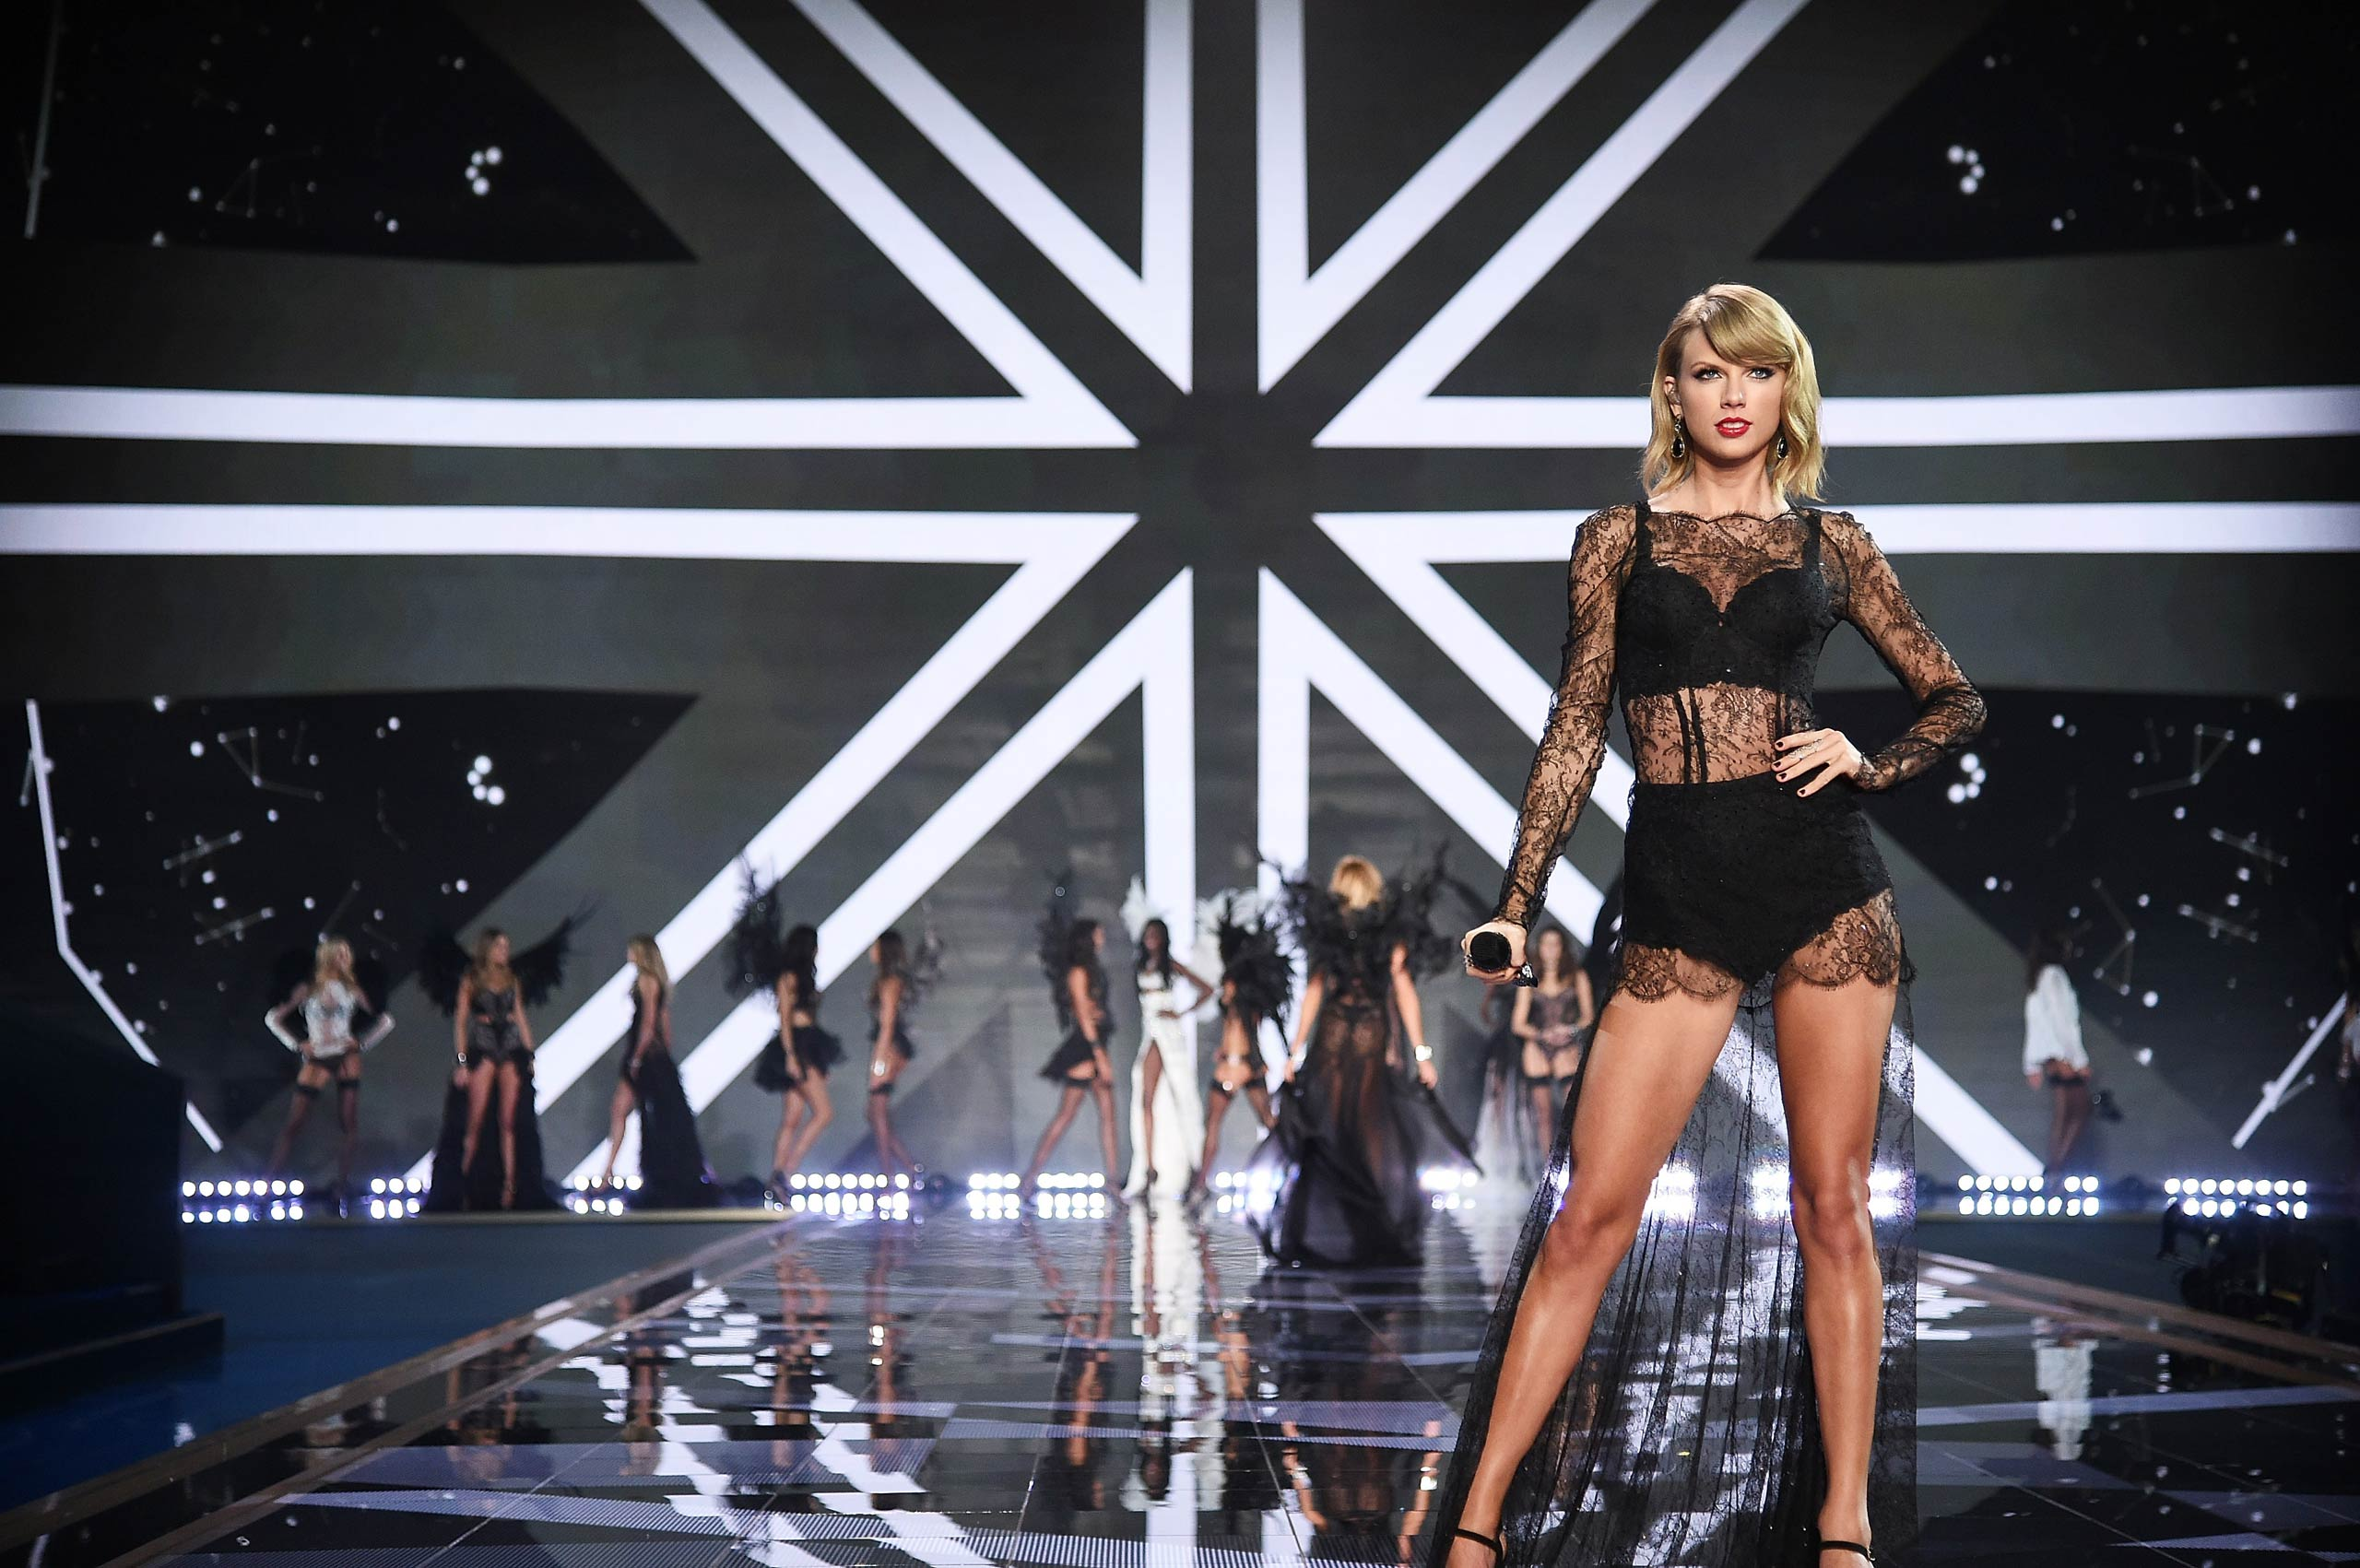 Taylor Swift performs during the 2014 Victoria's Secret Fashion Show at Earl's Court exhibition centre on Dec. 2, 2014 in London, England.